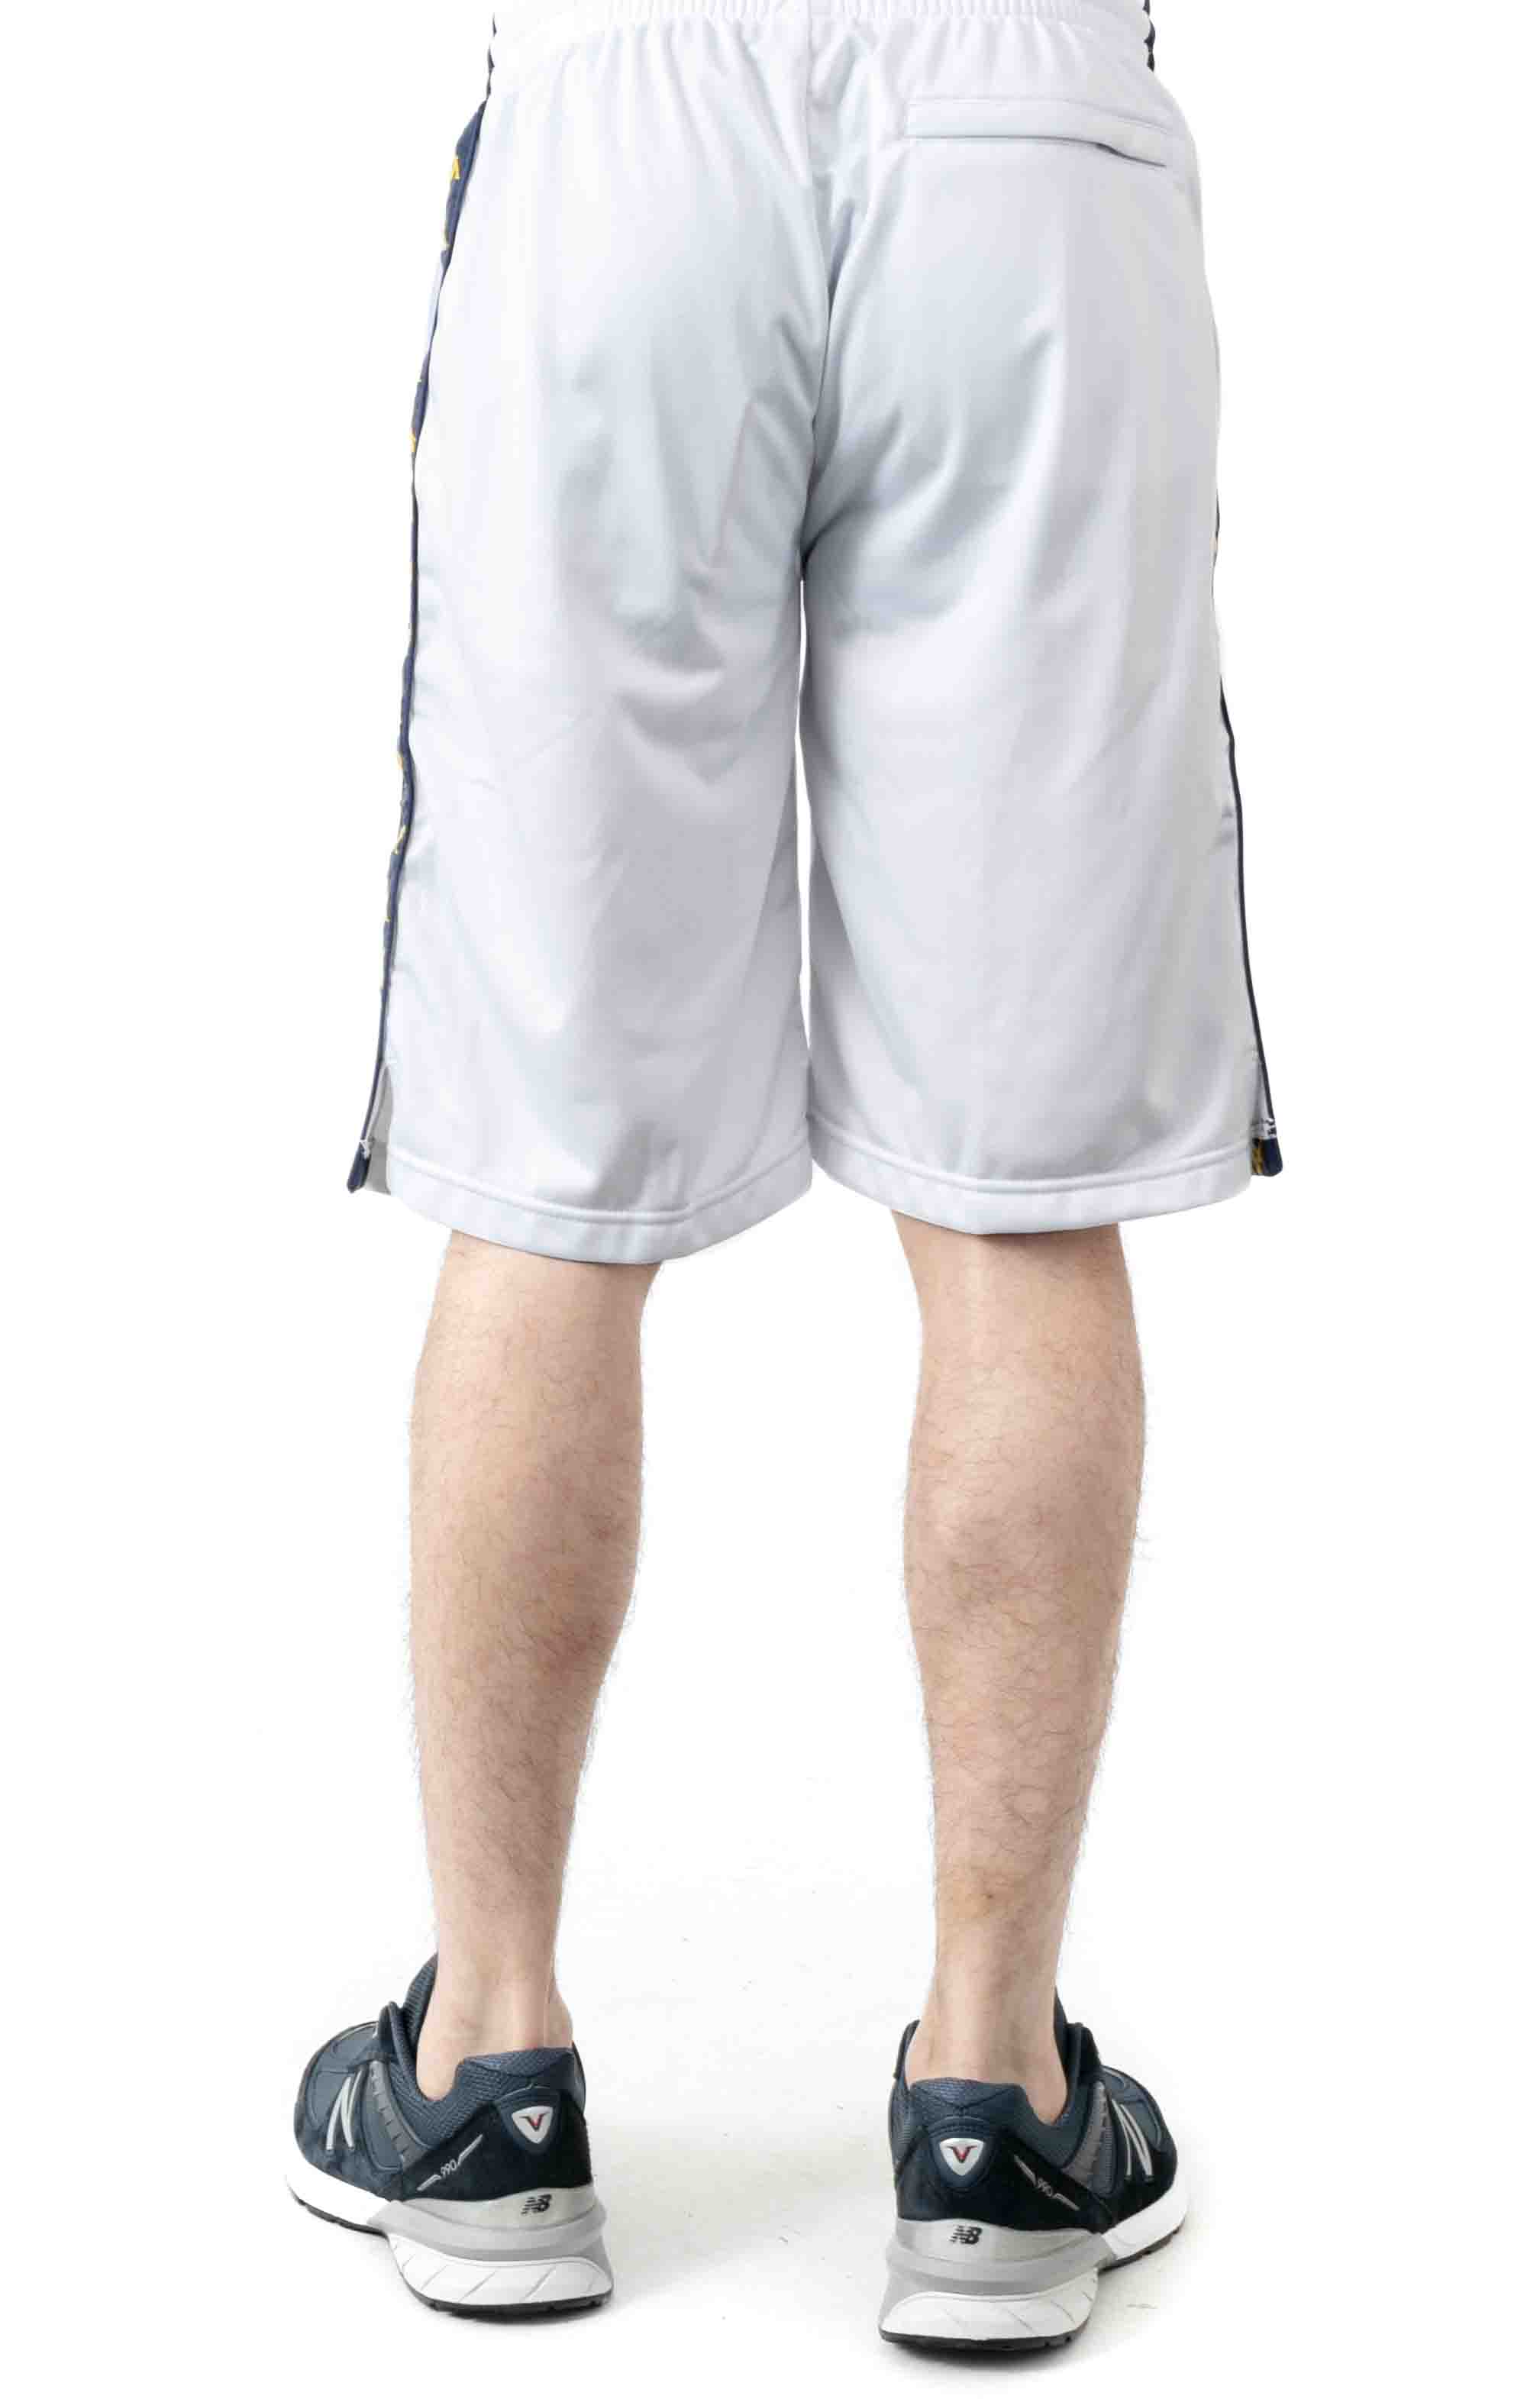 222 Banda Treadwellz Shorts - White/Blue Mid/Yellow 3